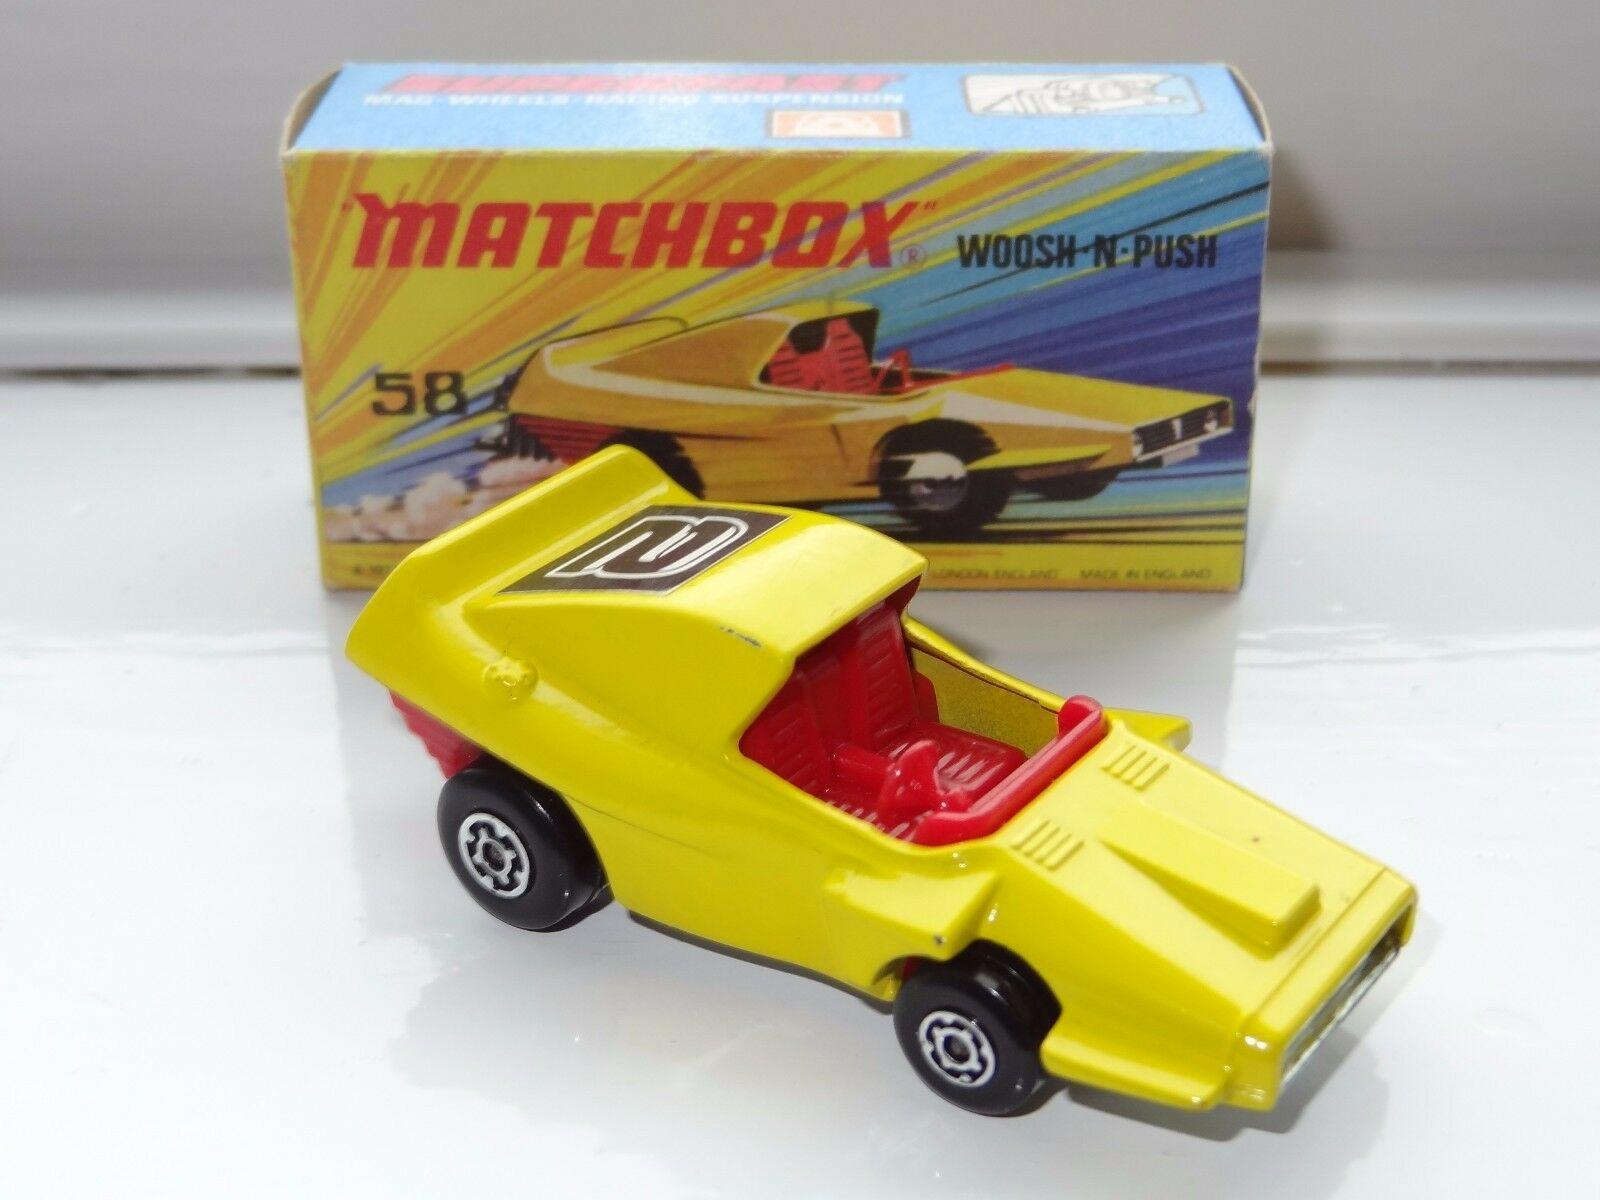 (K) lesney matchbox SUPERFAST WHOOSH N PUSH- 58